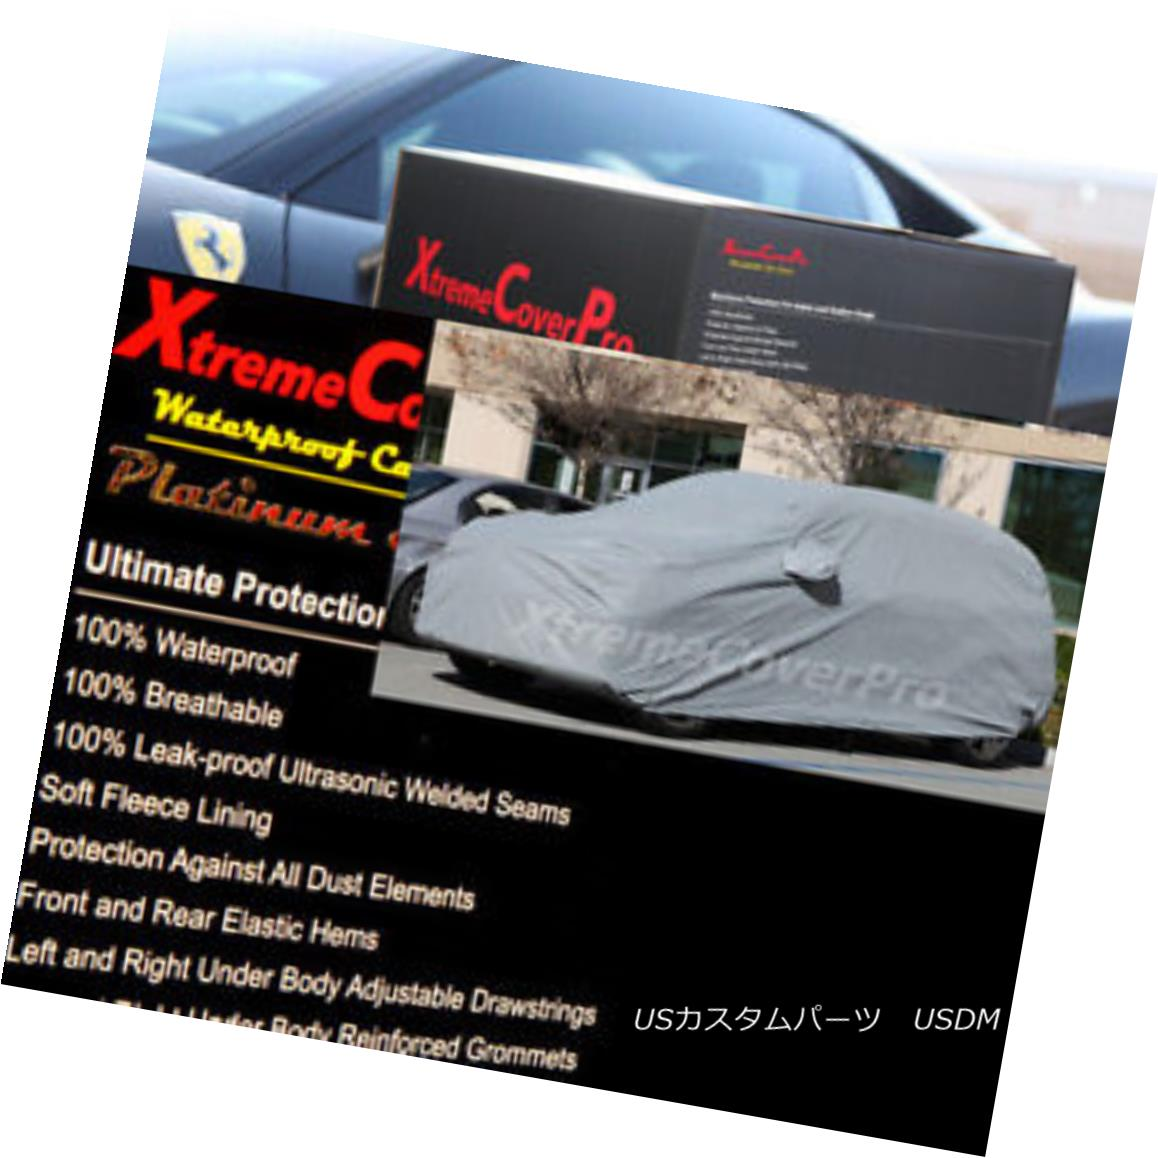 カーカバー 2015 DODGE JOURNEY Waterproof Car Cover w/Mirror Pockets - Gray 2015 DODGE JOURNEYミラーポケット付き防水カーカバー - グレー